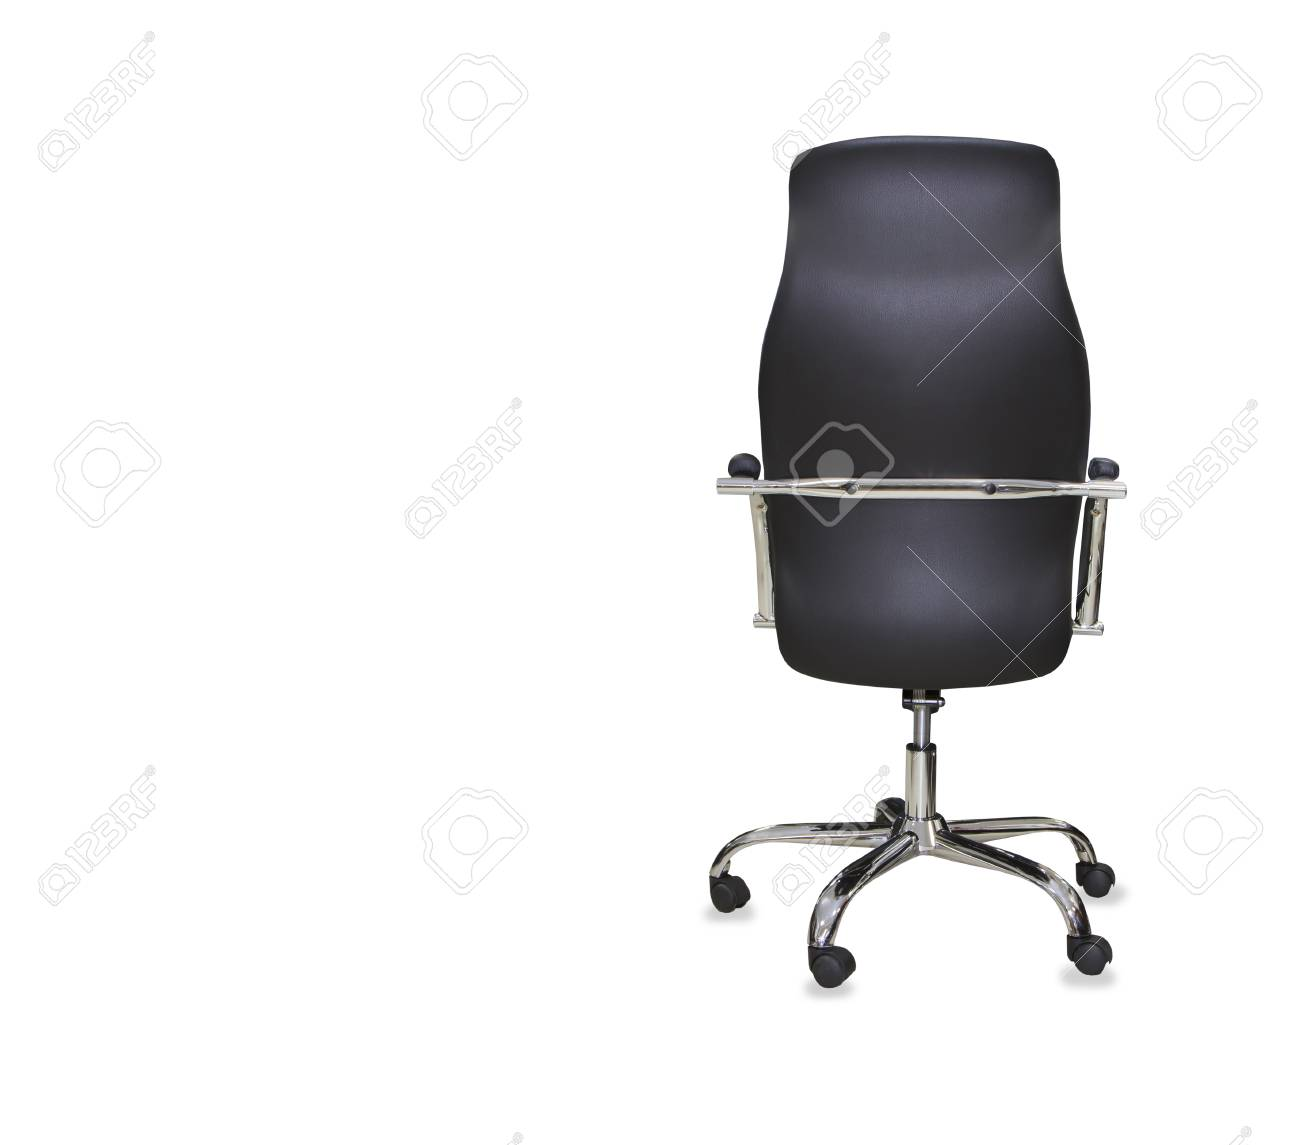 office chair back view. Back View Of Modern Office Chair From Black Leather. Isolated Stock Photo - 66803160